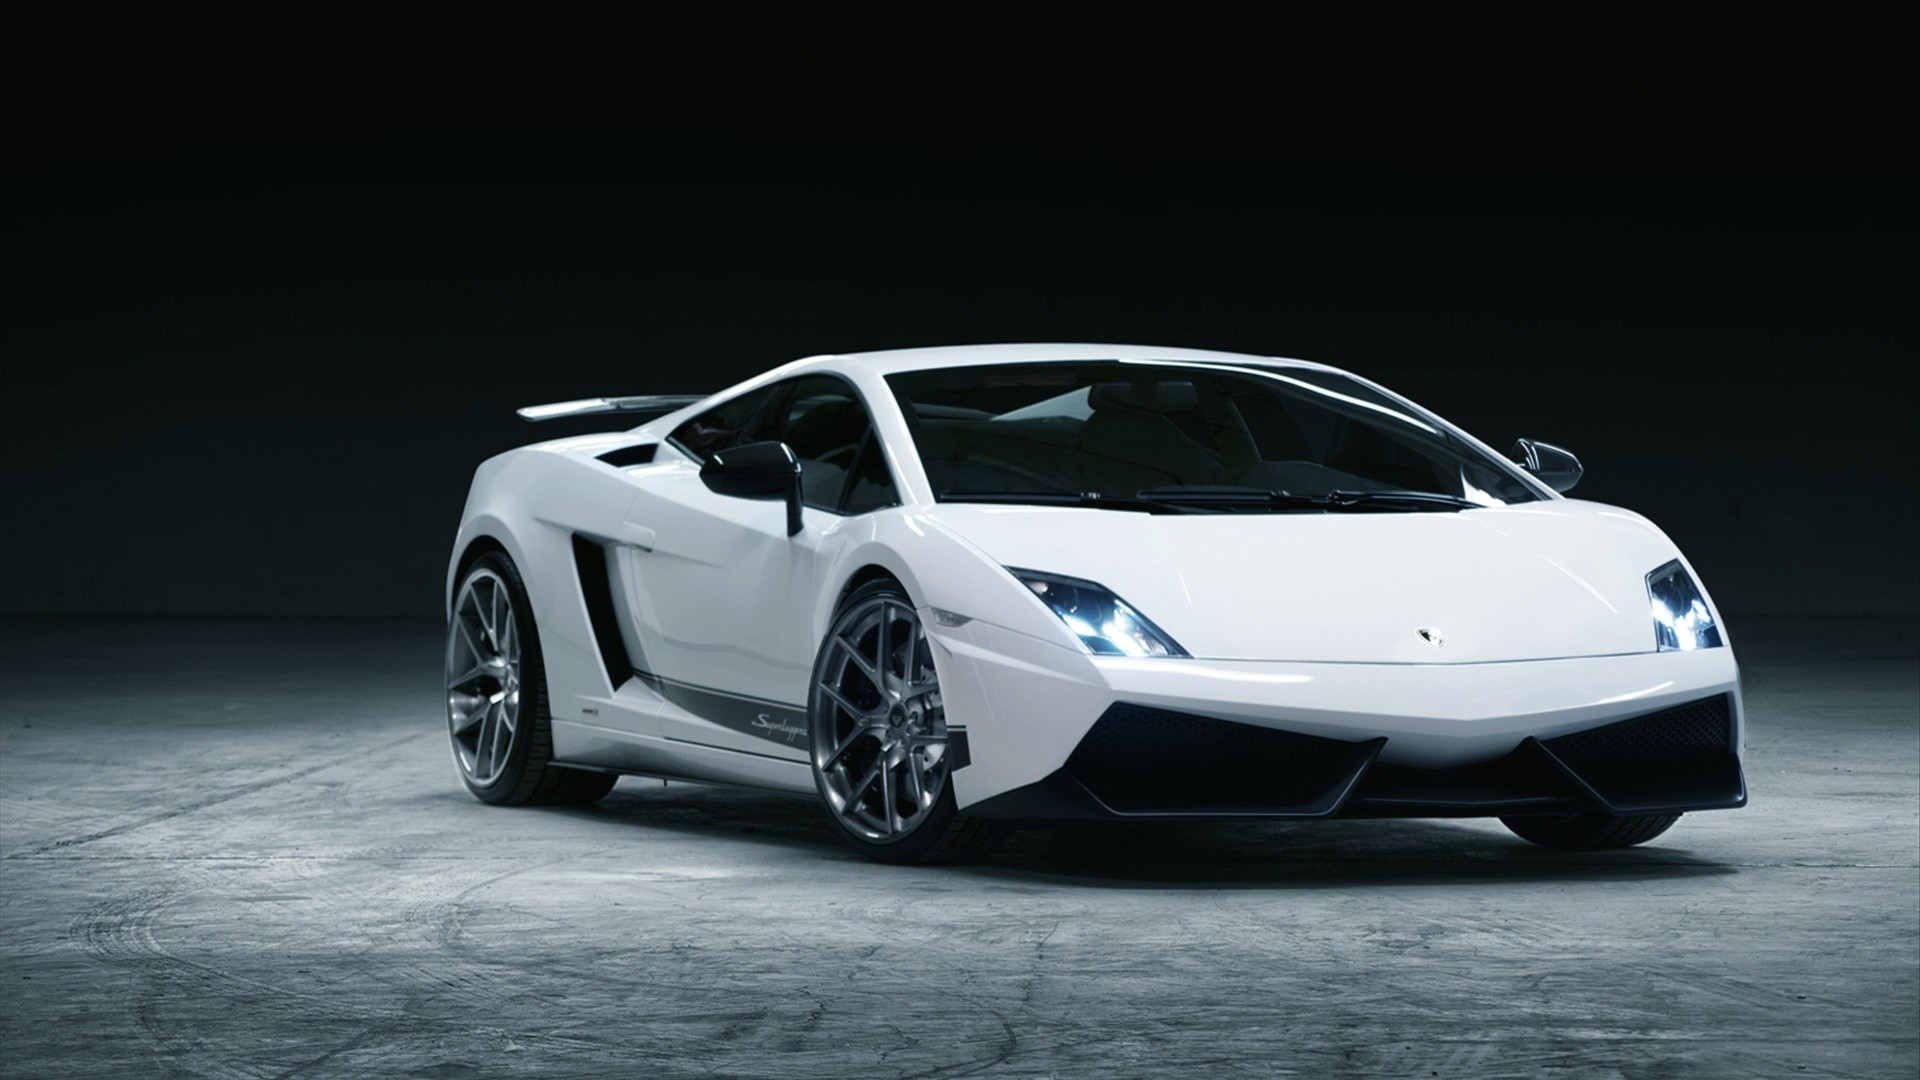 1920x1080 Cool Wallpapers Lamborghini Aventador HD Wallpaper Cool Wallpapers